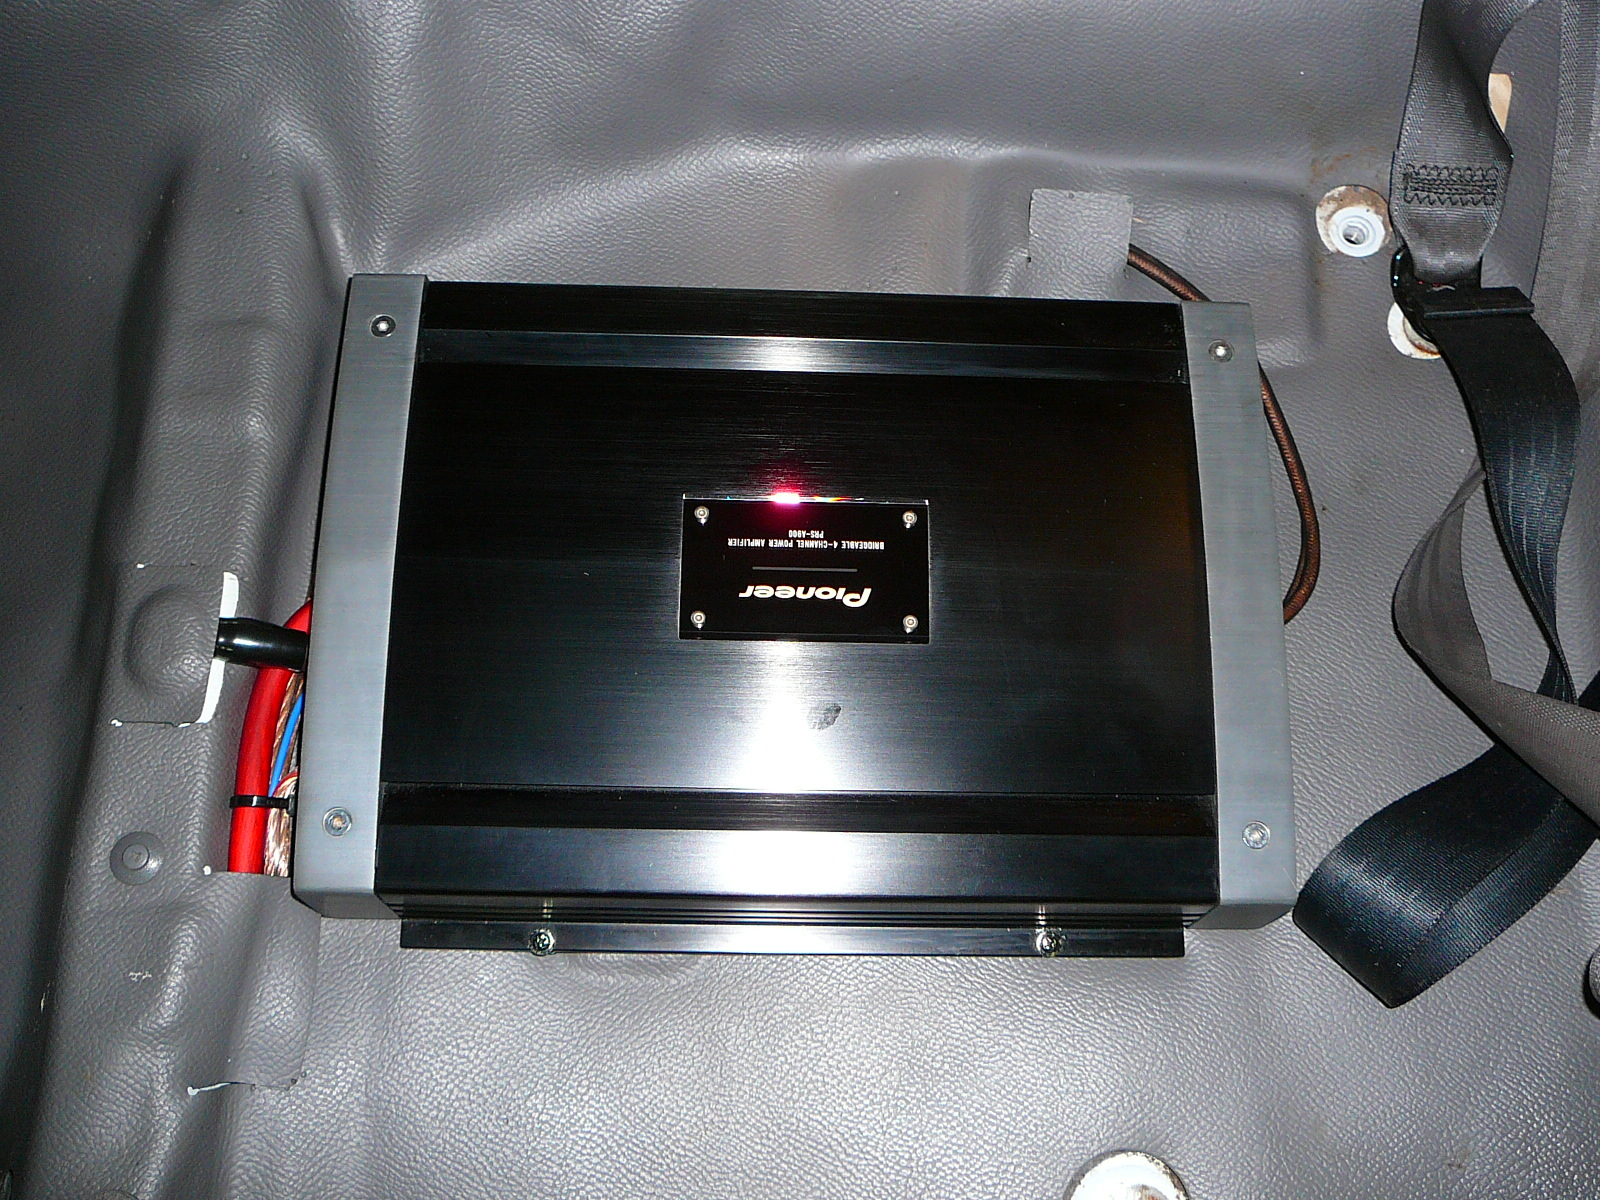 Mazda Bravo, Focal Utopia speakers and Pioneer PRS amplifier